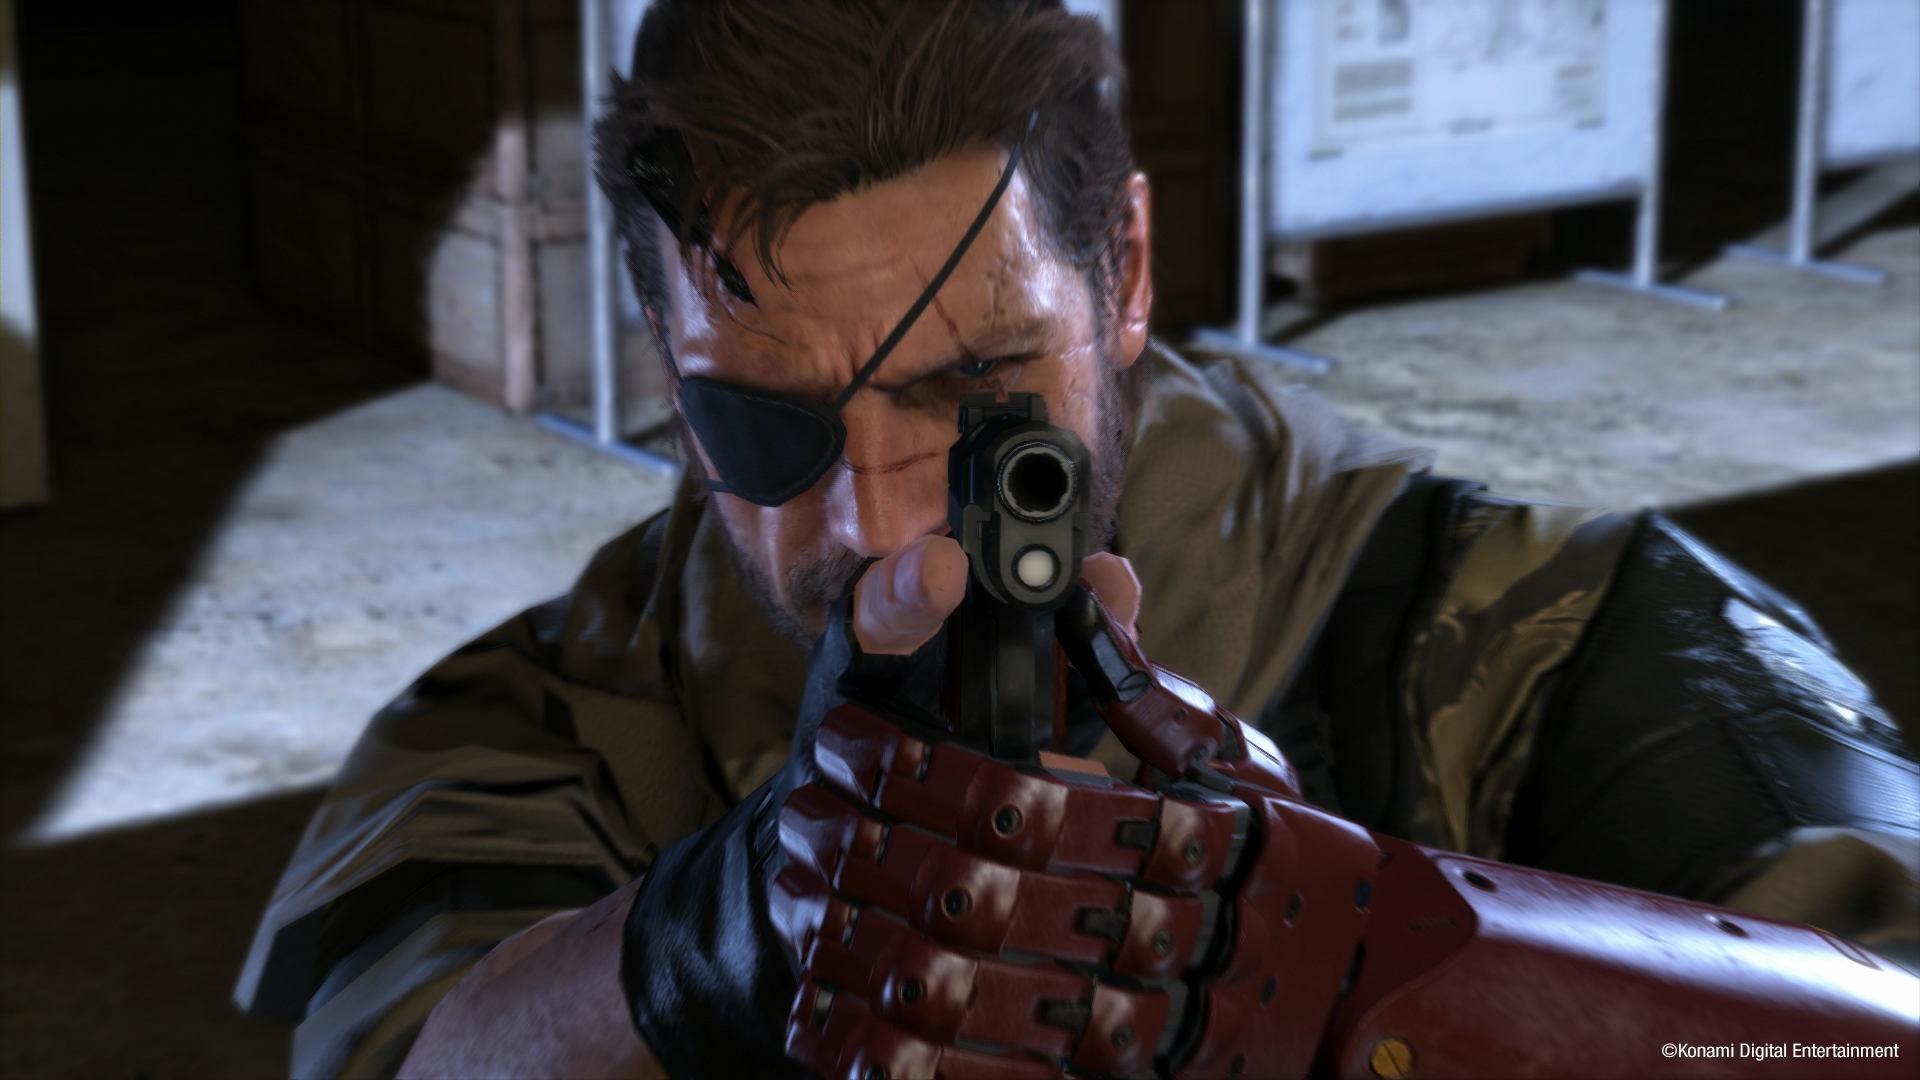 Metal Gear Solid V: The Phantom Pain background